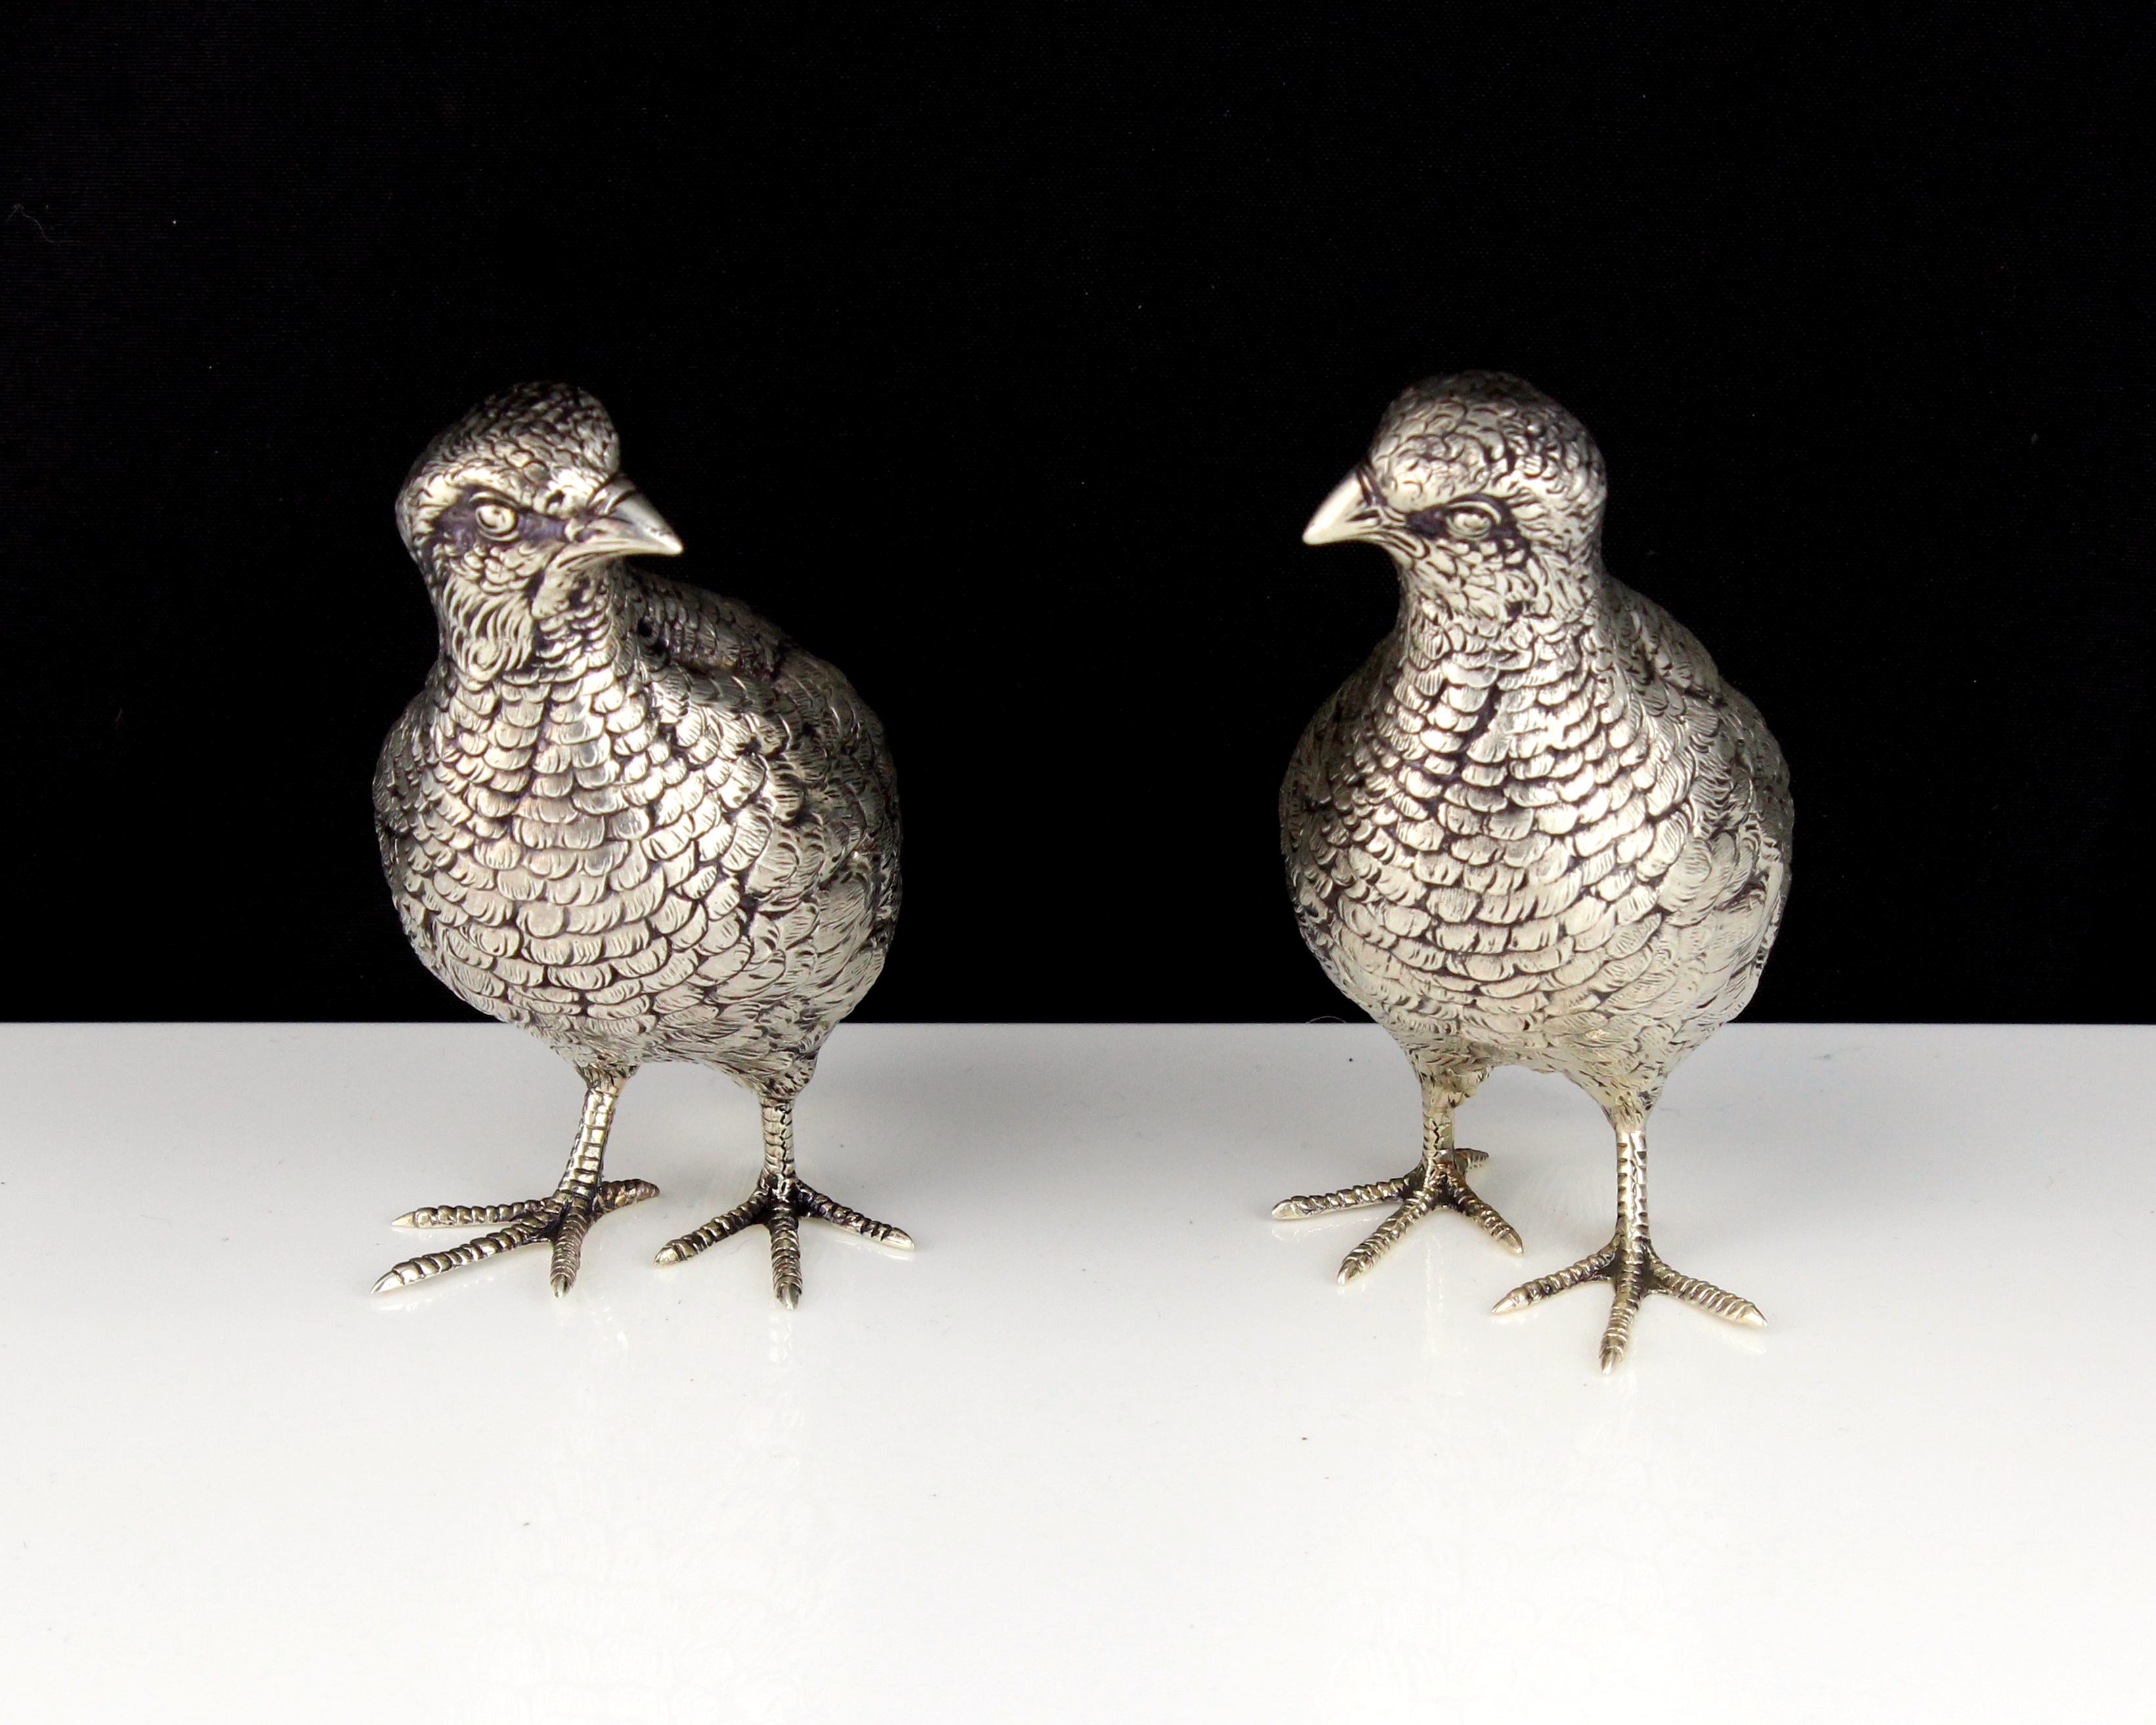 Los 39 - A pair of antique German Sterling Silver statues of grouse circa 1890 each modeled as a standing